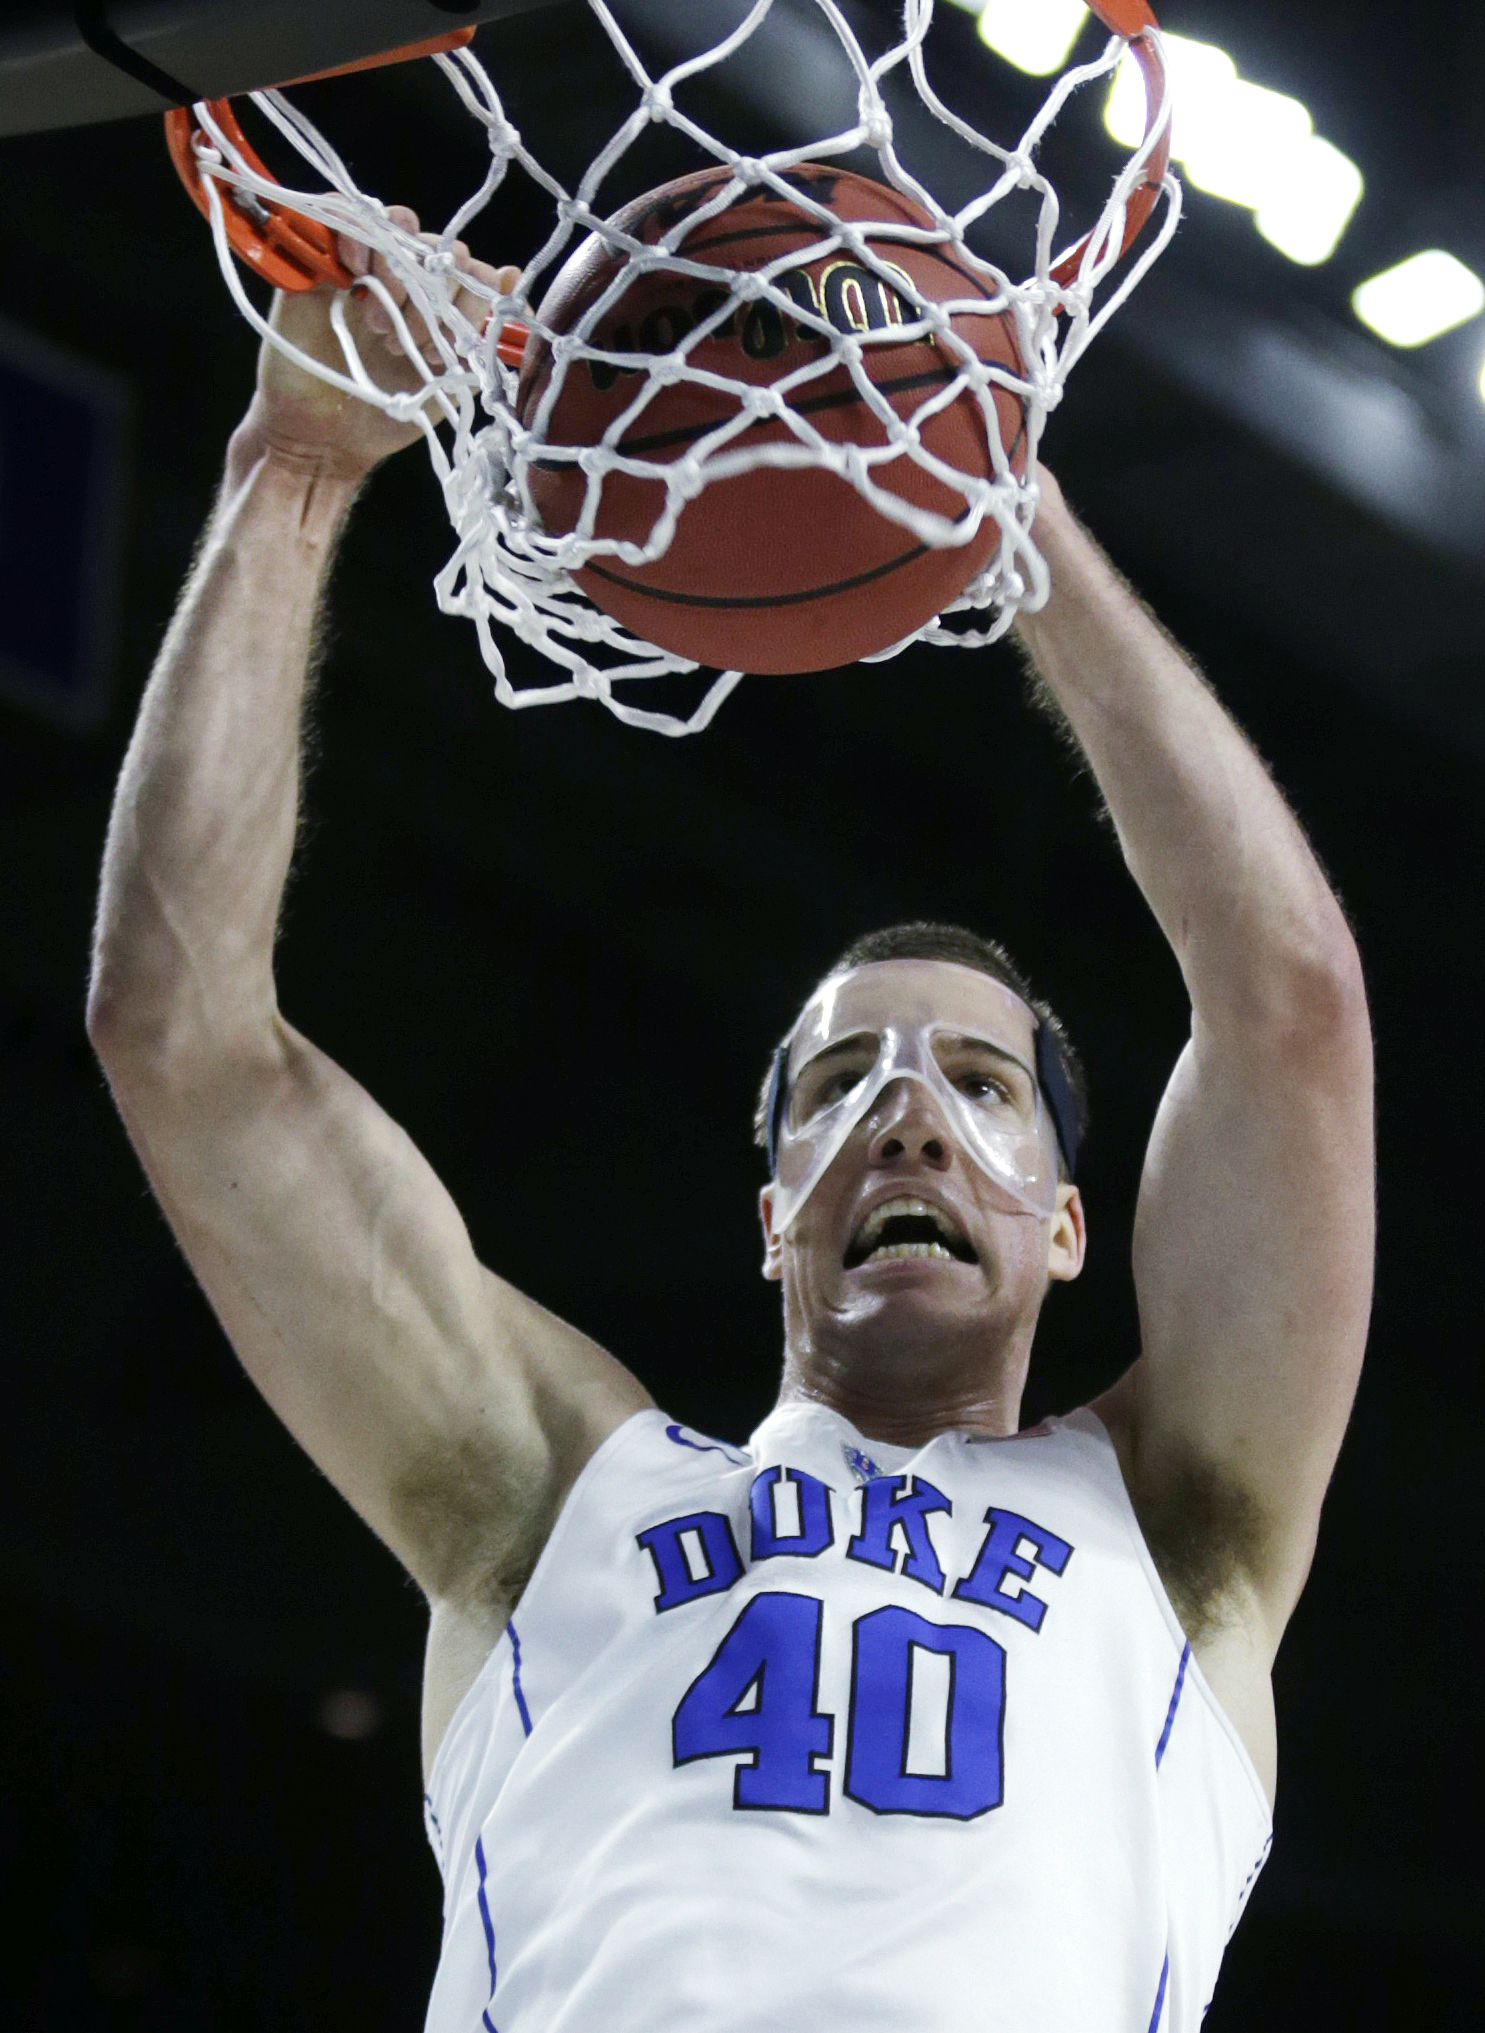 Duke center Marshall Plumlee (40) slams a dunk against North Carolina-Wilmington in the first half during the first round of the NCAA college men's basketball tournament in Providence, R.I., Thursday, March 17, 2016. (AP Photo/Charles Krupa)